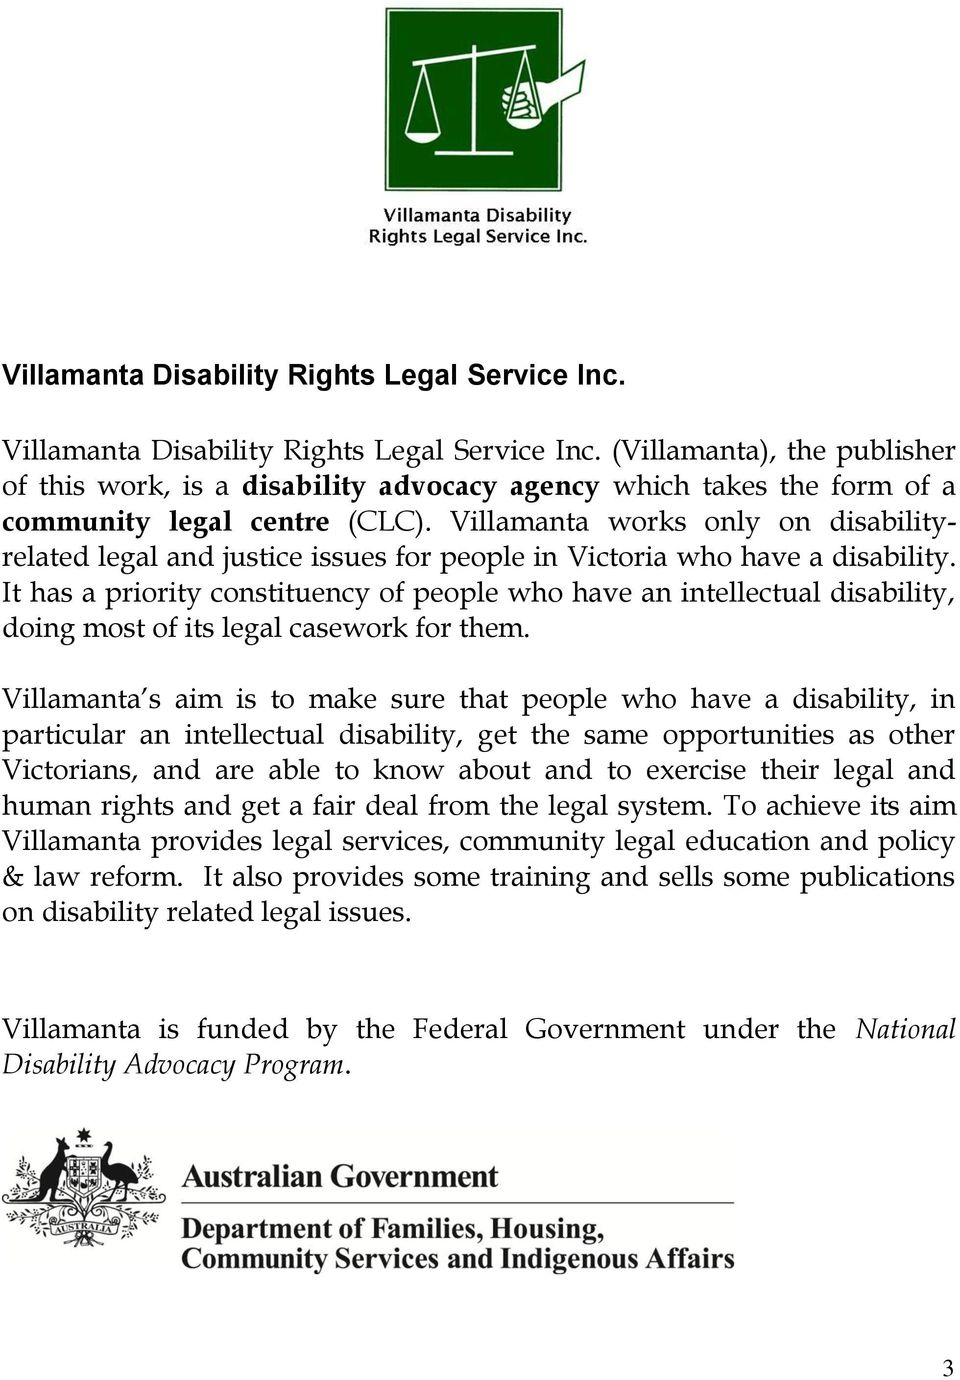 Villamanta works only on disabilityrelated legal and justice issues for people in Victoria who have a disability.